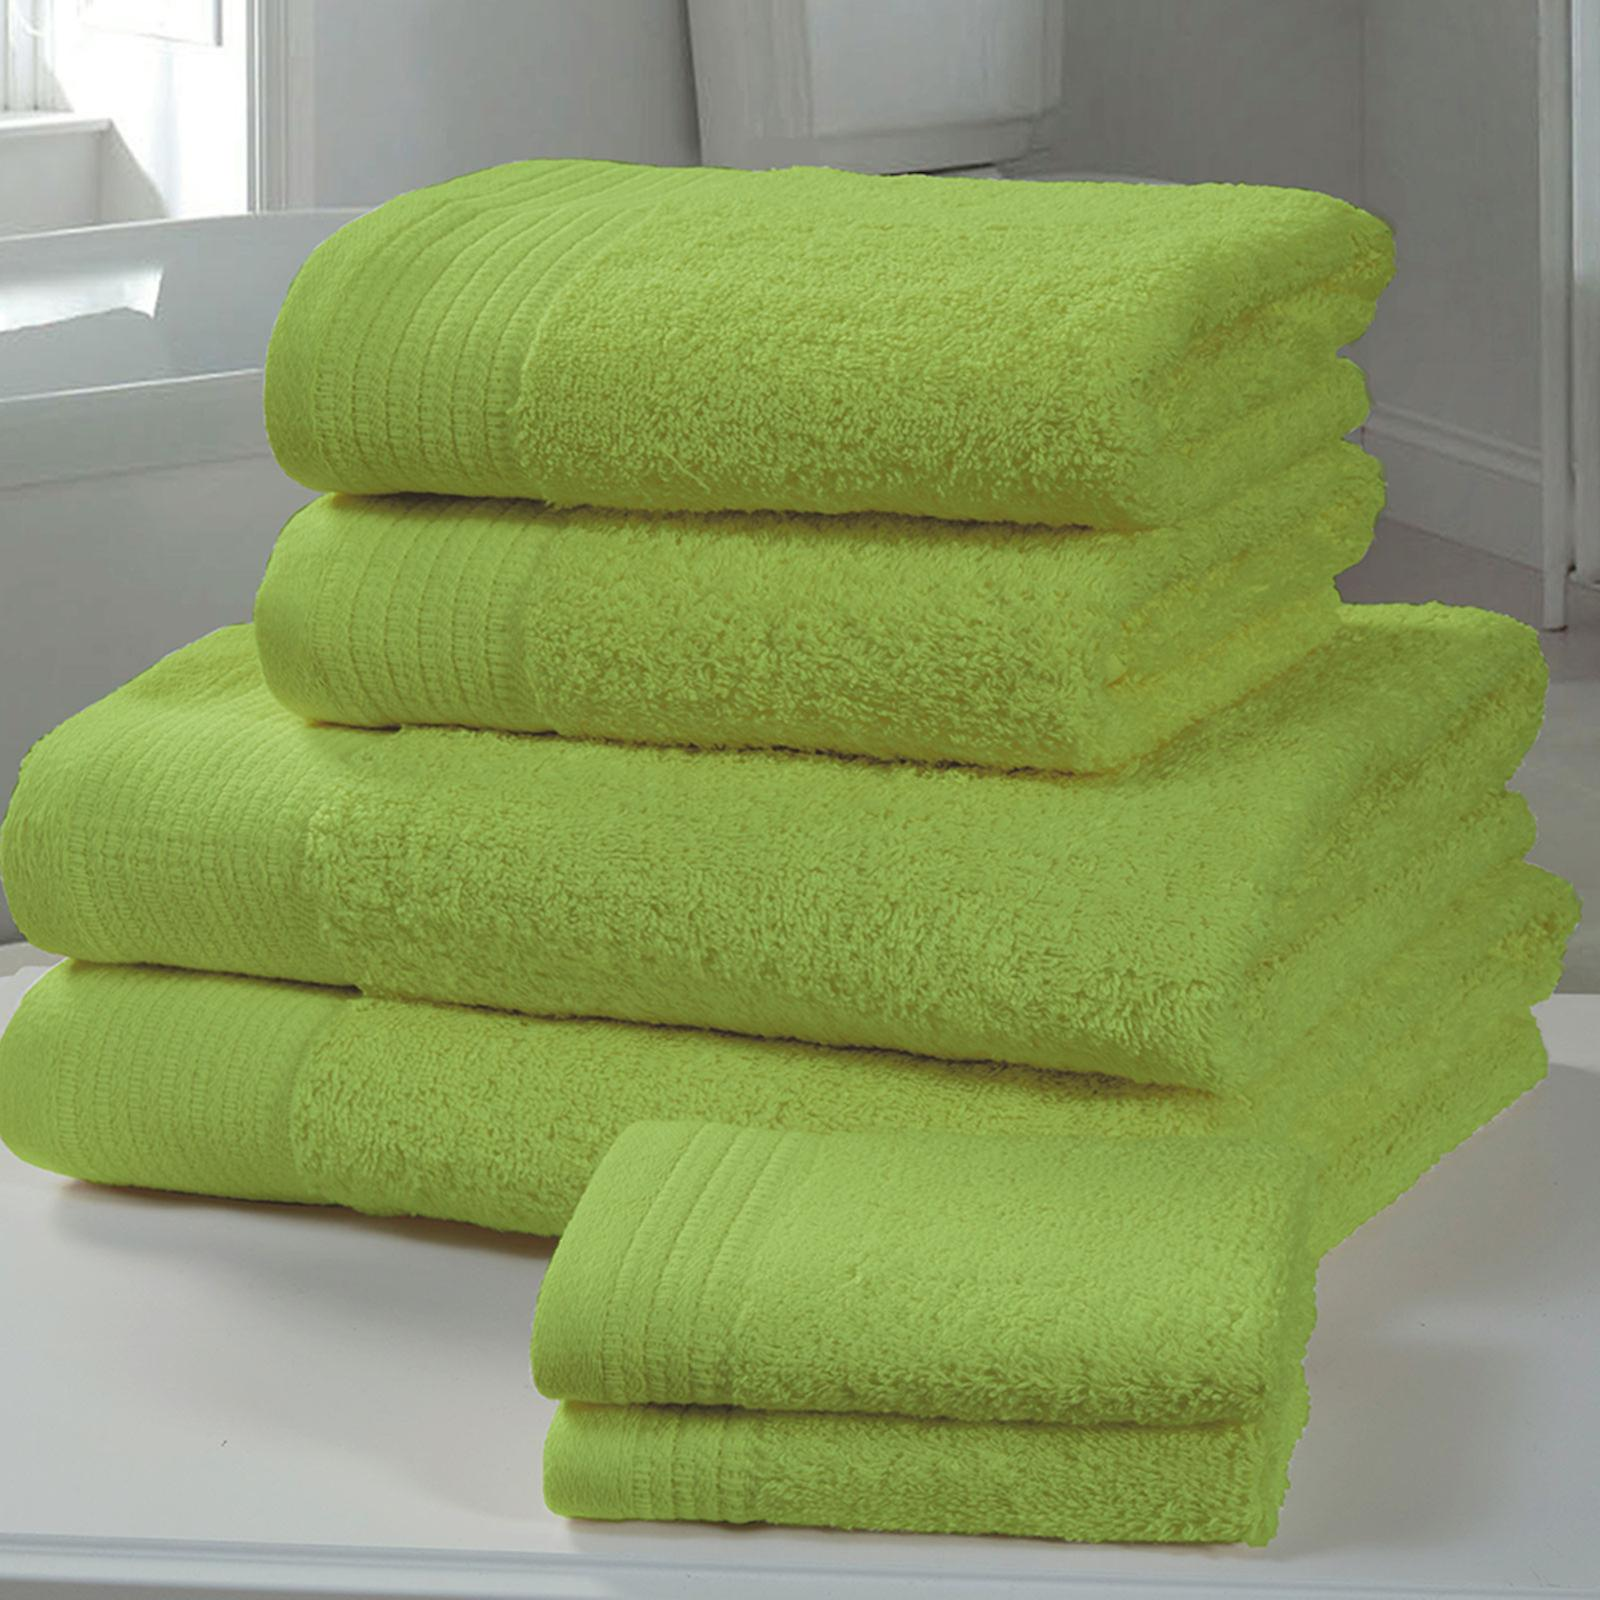 Chatsworth 4 Piece Towel Bale Lime - 2 Hand Towels, 2 Bath Towels